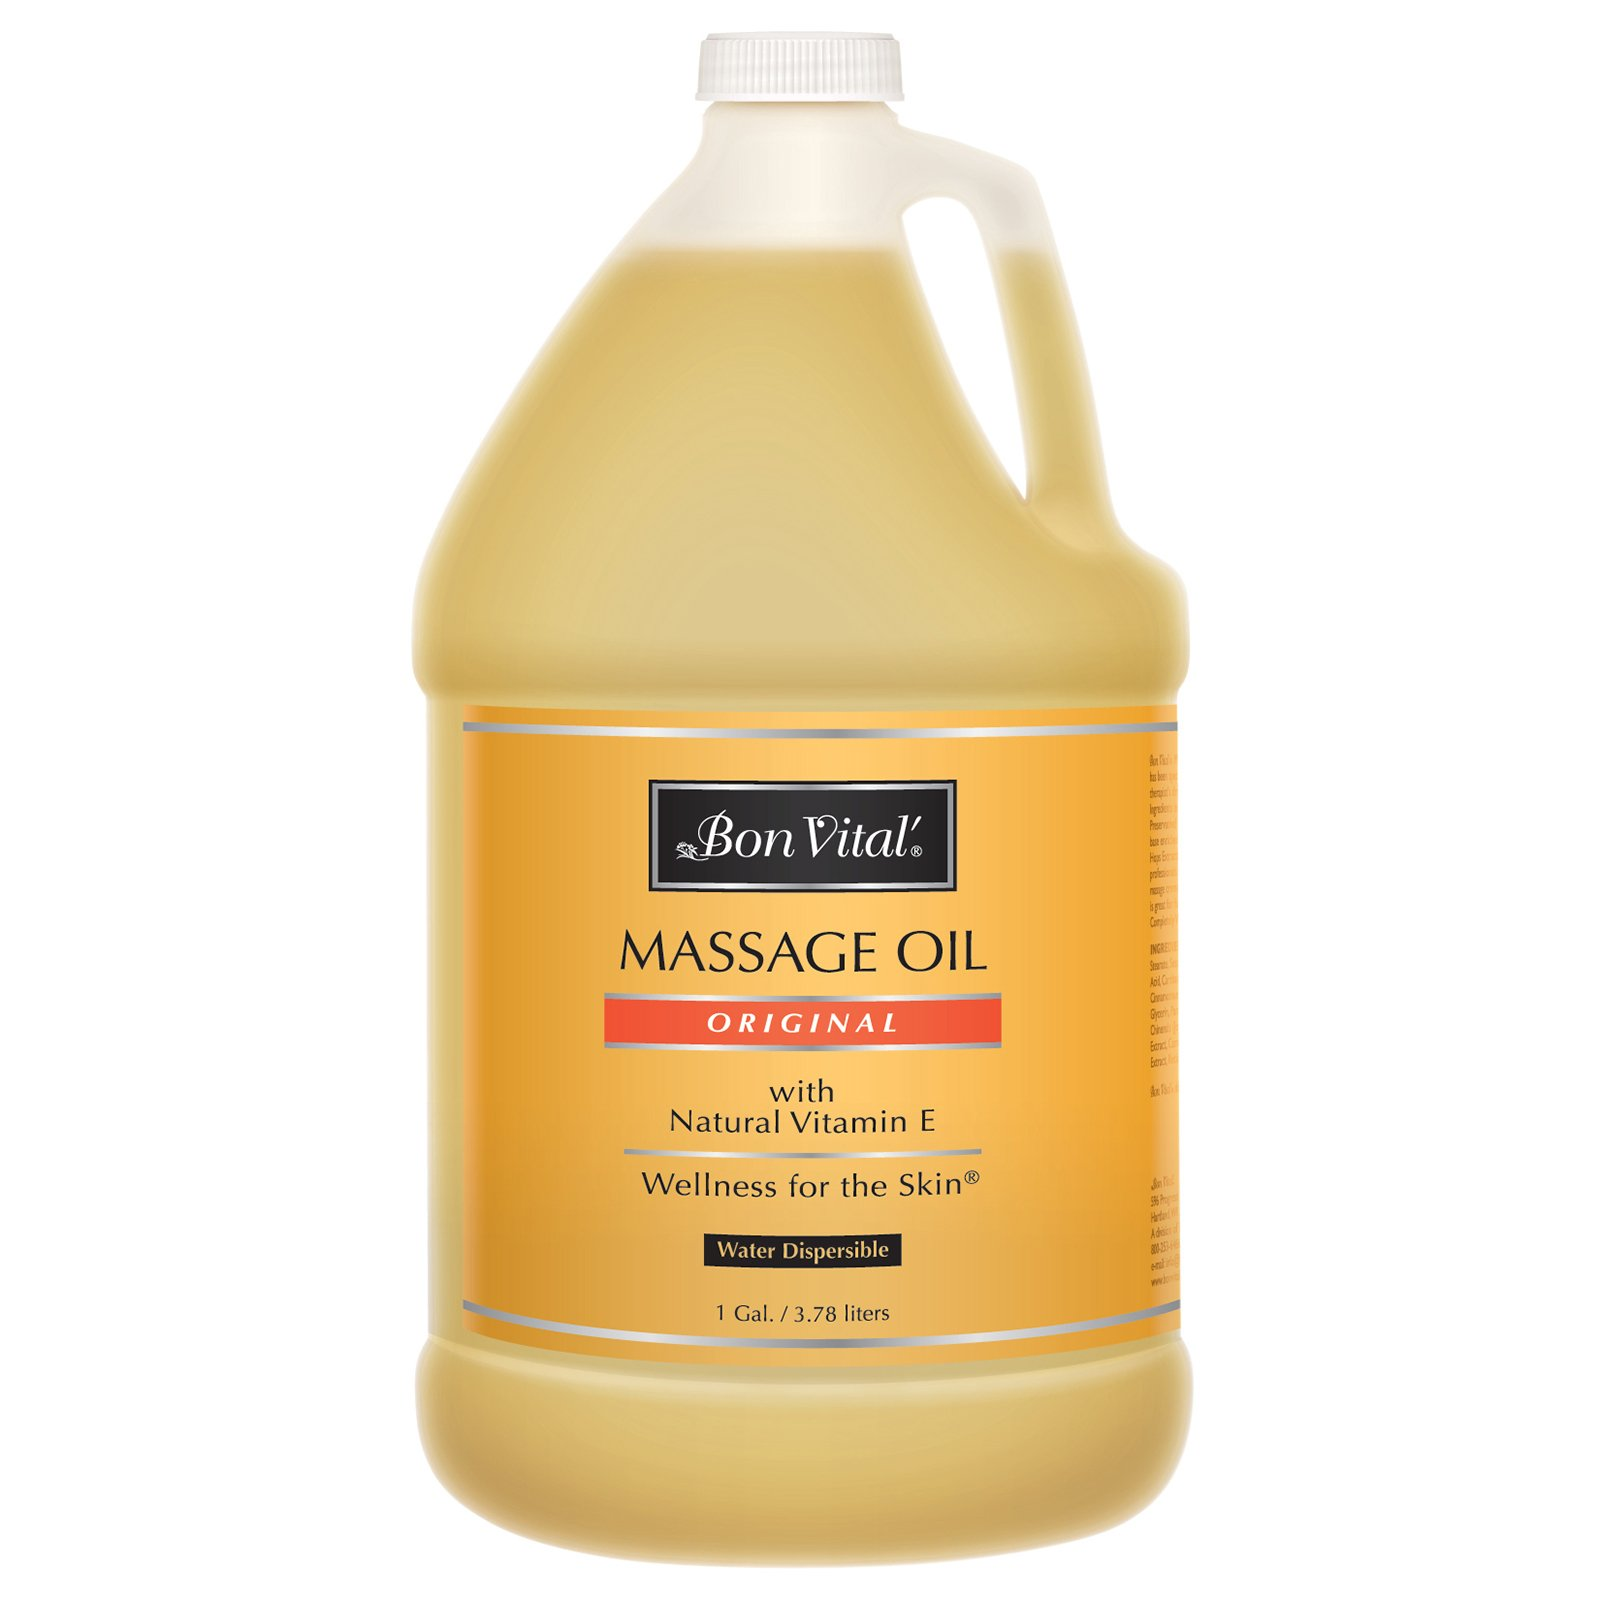 Bon Vital' Original Massage Oil for a Versatile Massage Foundation to Relax Sore Muscles and Repair Dry Skin, Most Requested, Best Massage Oil on Market, Unbeatable Consistency and Quality, 1 Gallon by Bon Vital